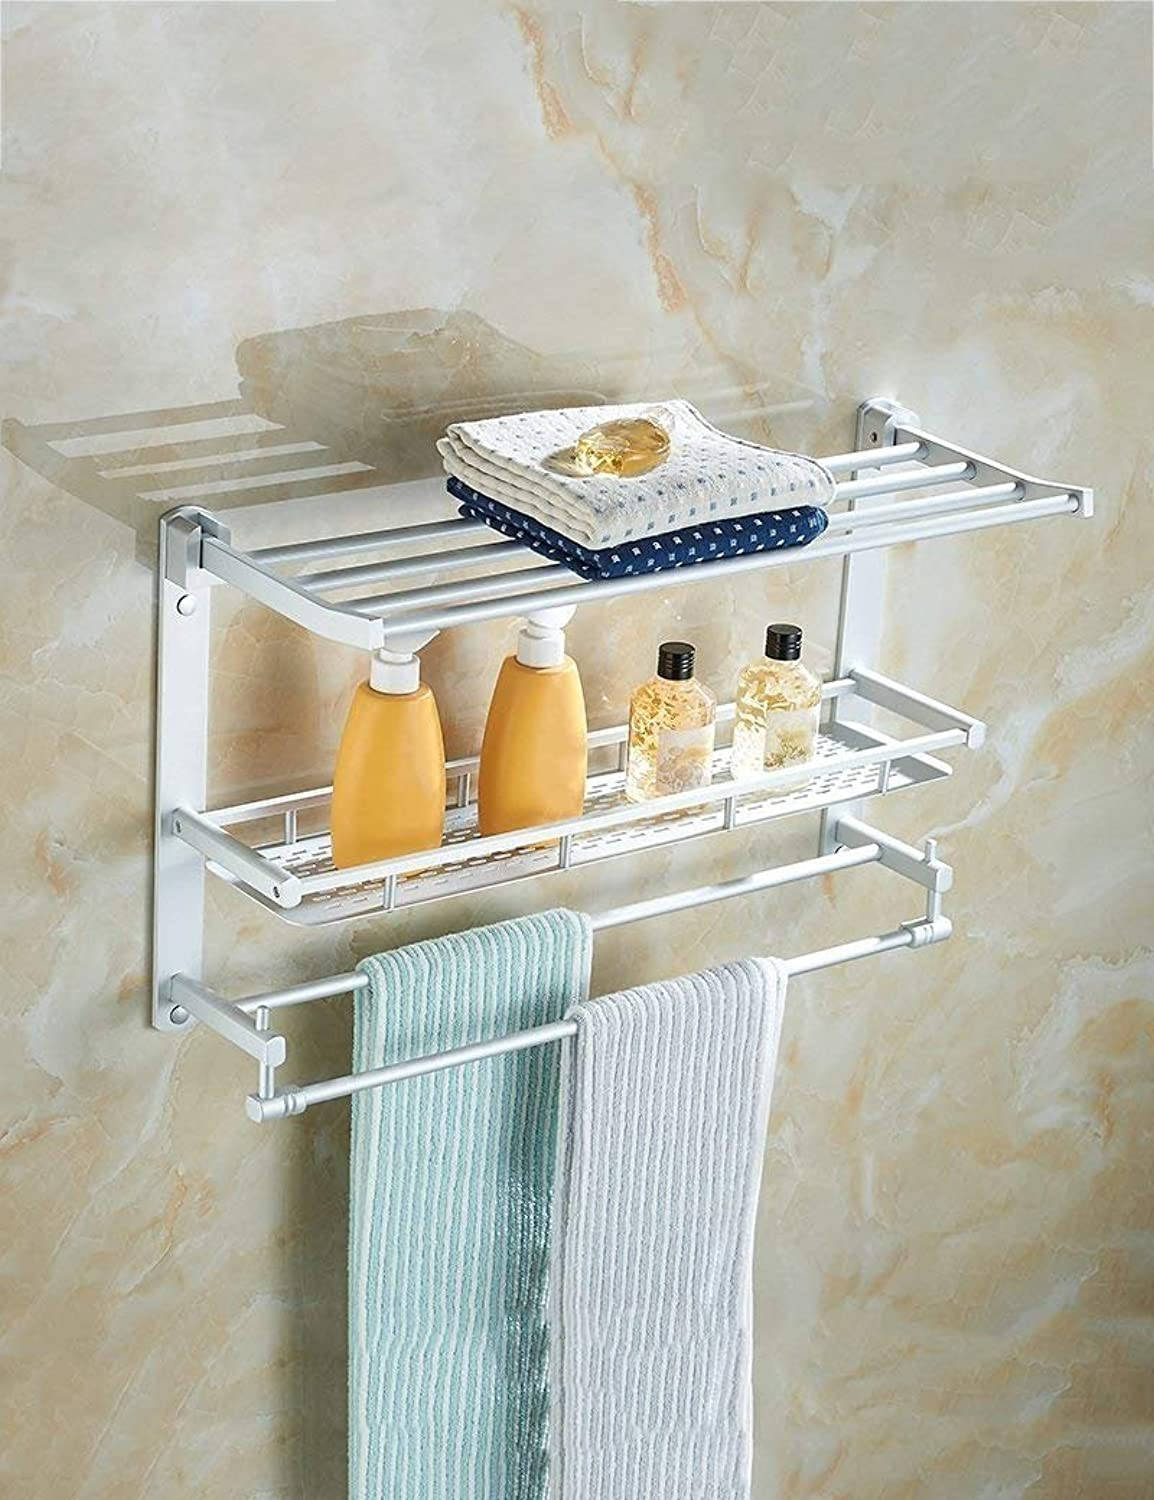 Shower-Folding, SEC Extremely Strong in The Aluminum of The Space Storage Rack Three Layers Shelves Bathroom thickener Pendentif Equipment Providing The Quality (color 3, Size  40cm)